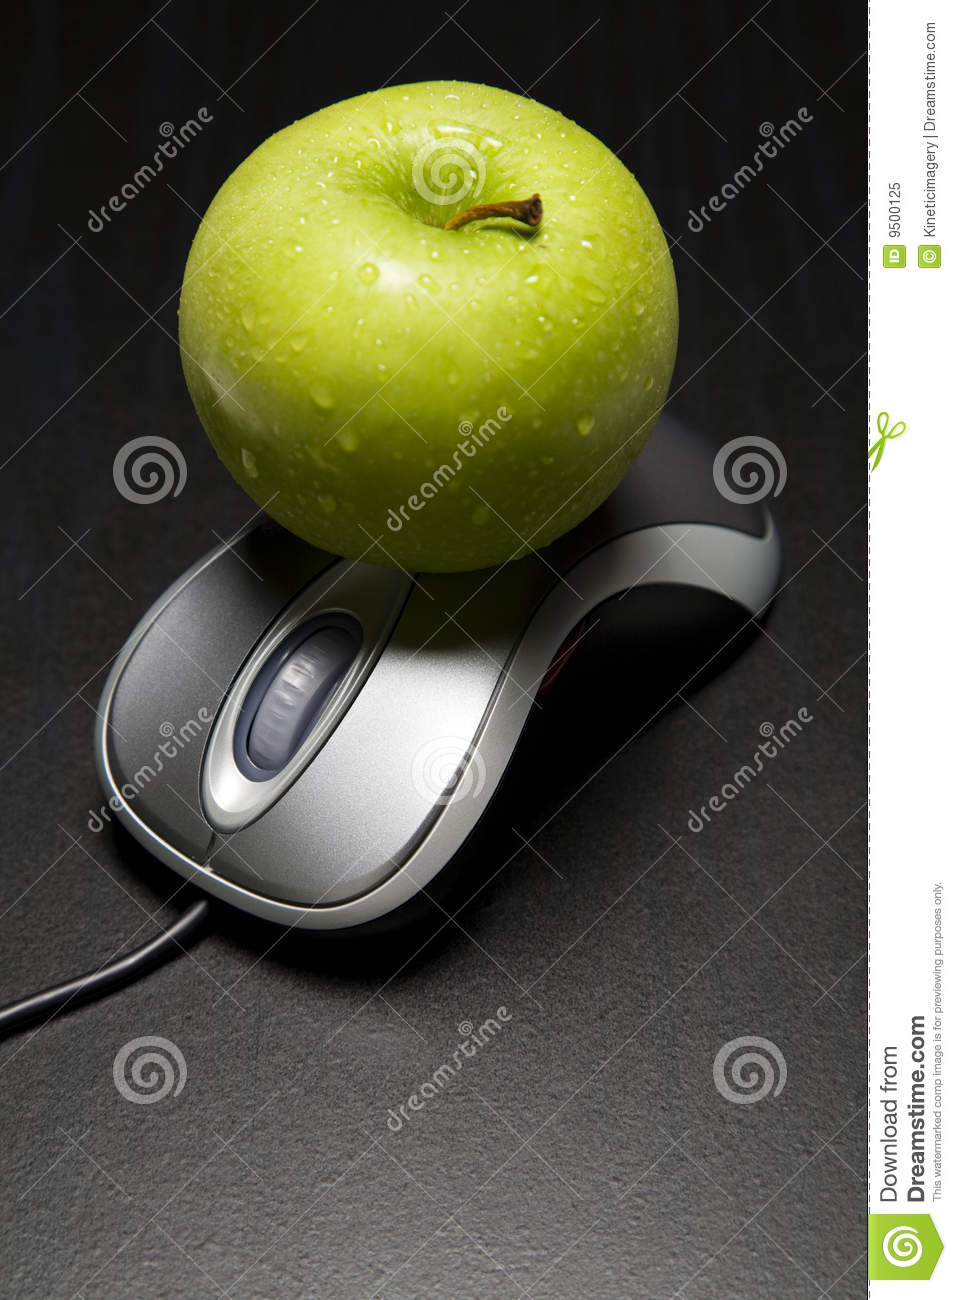 Apple on a computer mouse